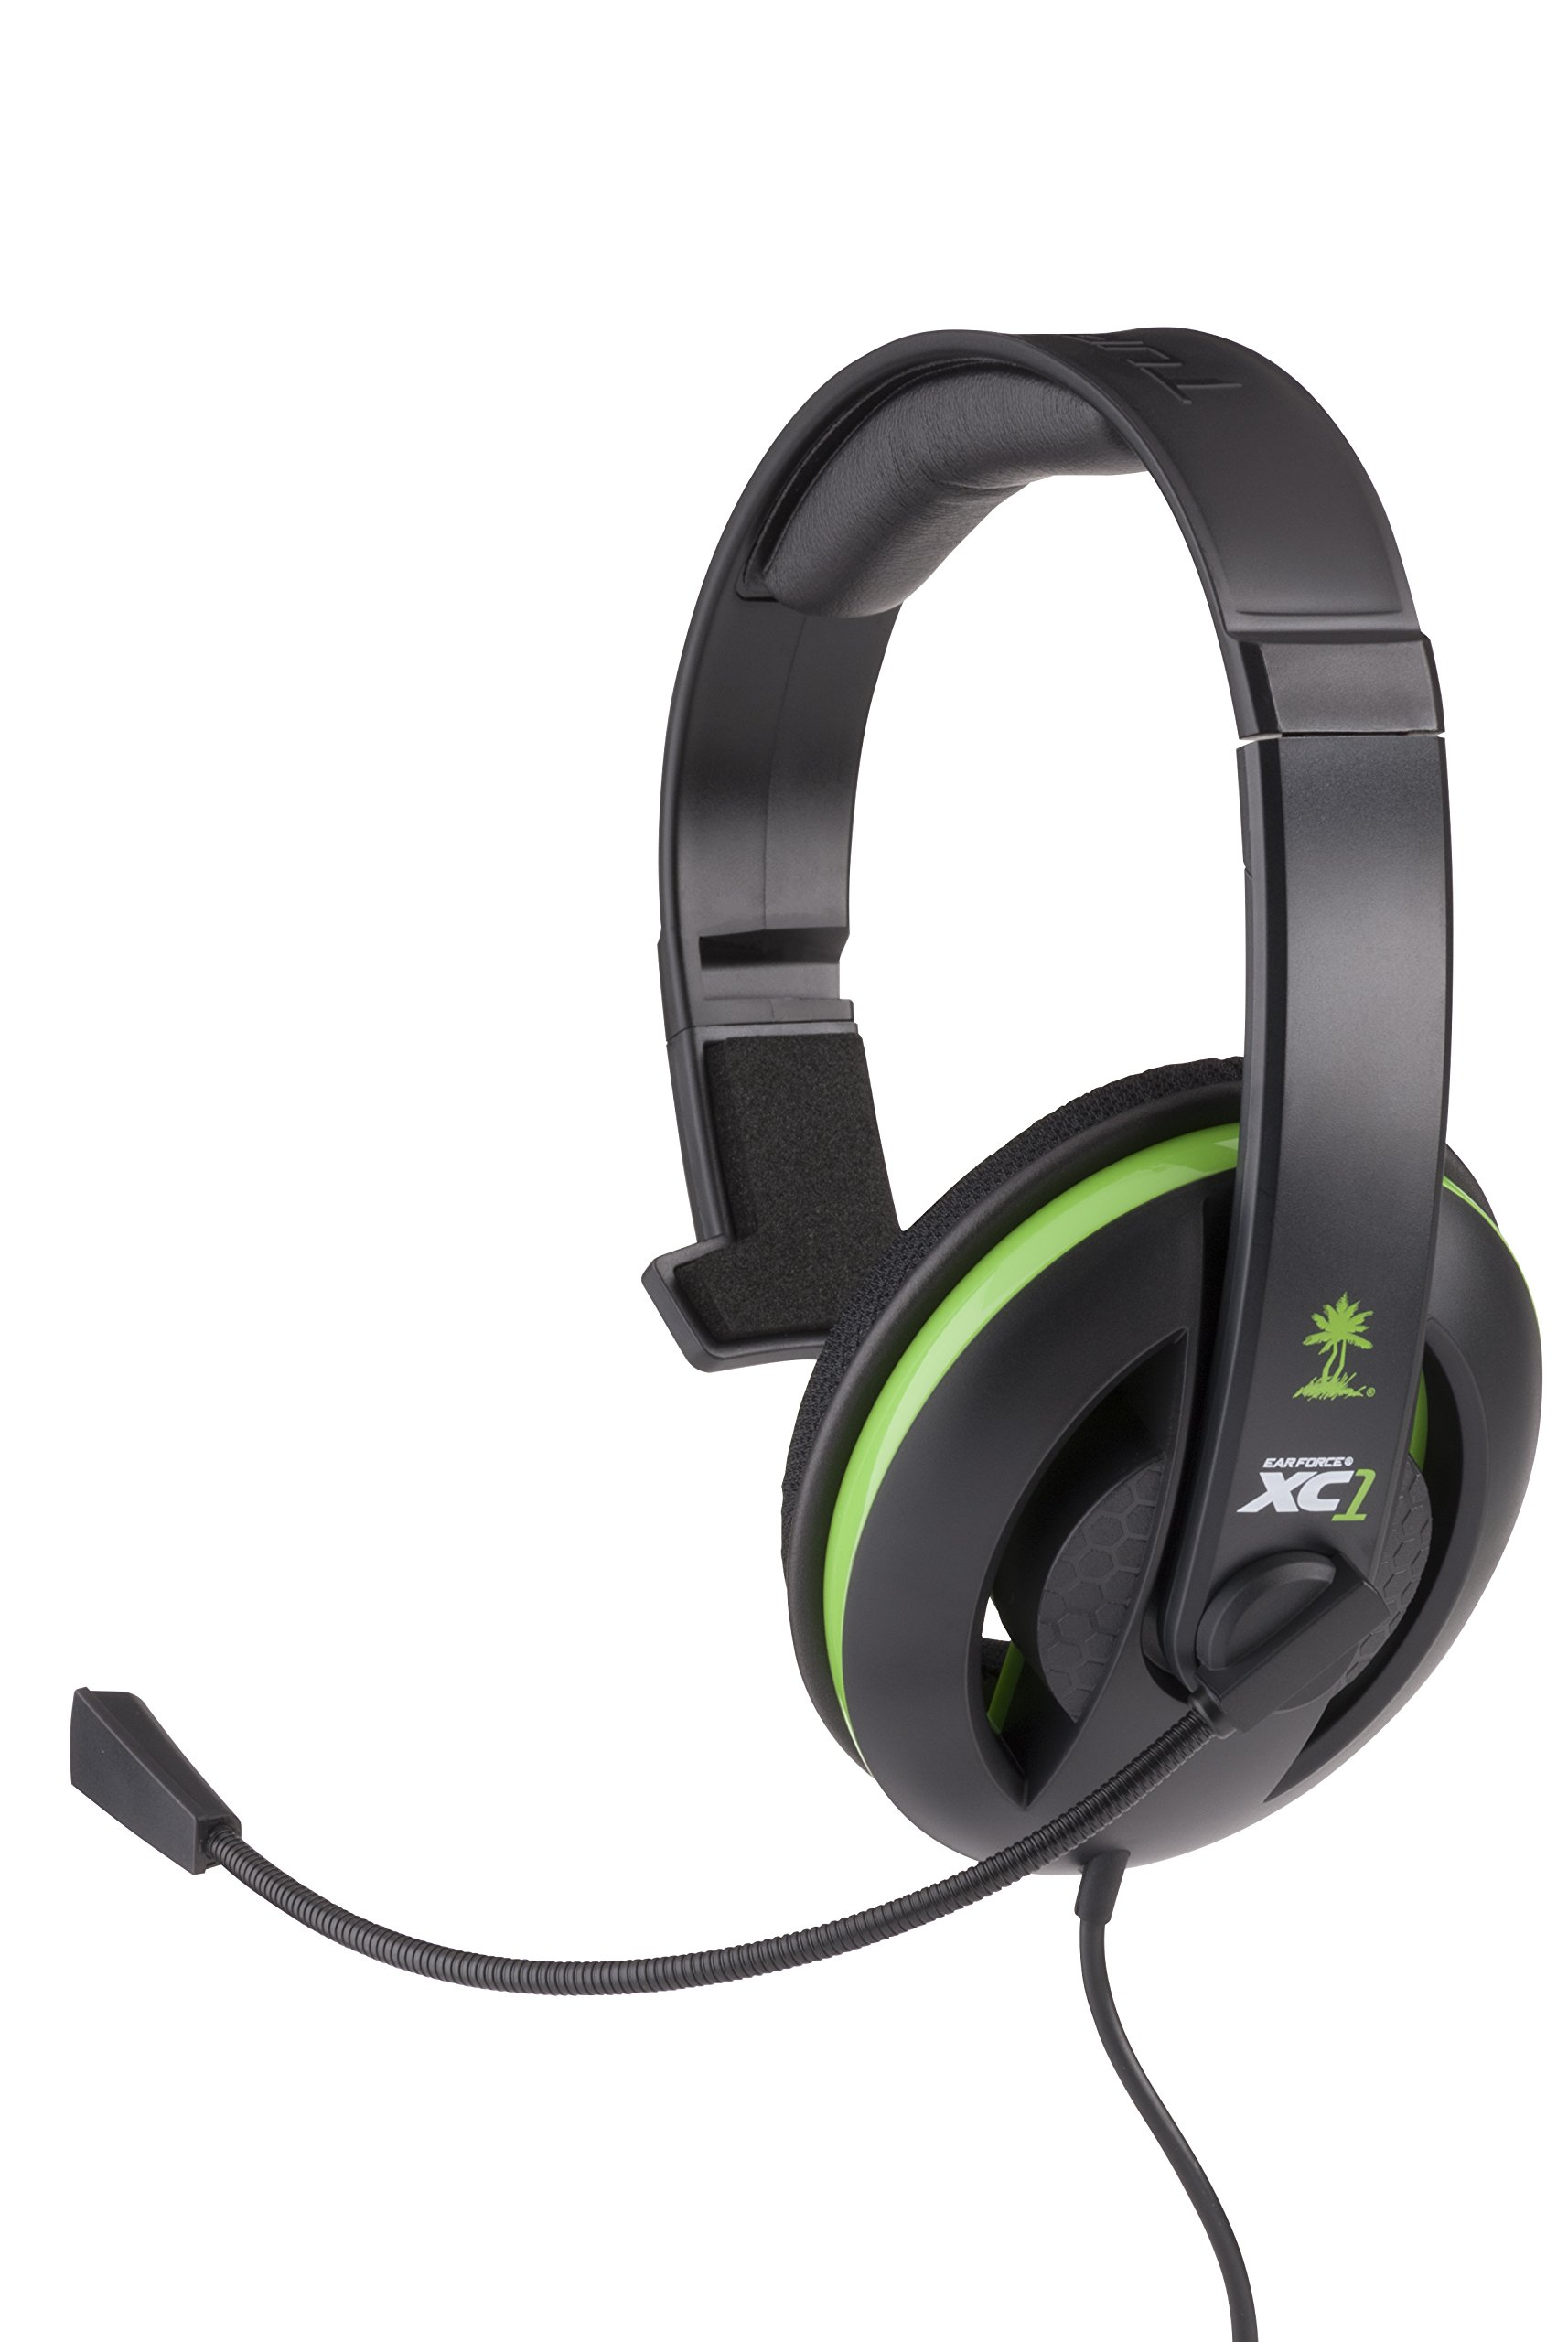 Turtle Beach - Ear Force XC1 Chat Communicator Gaming Headset - Xbox 360 (Discontinued by Manufacturer) by Turtle Beach